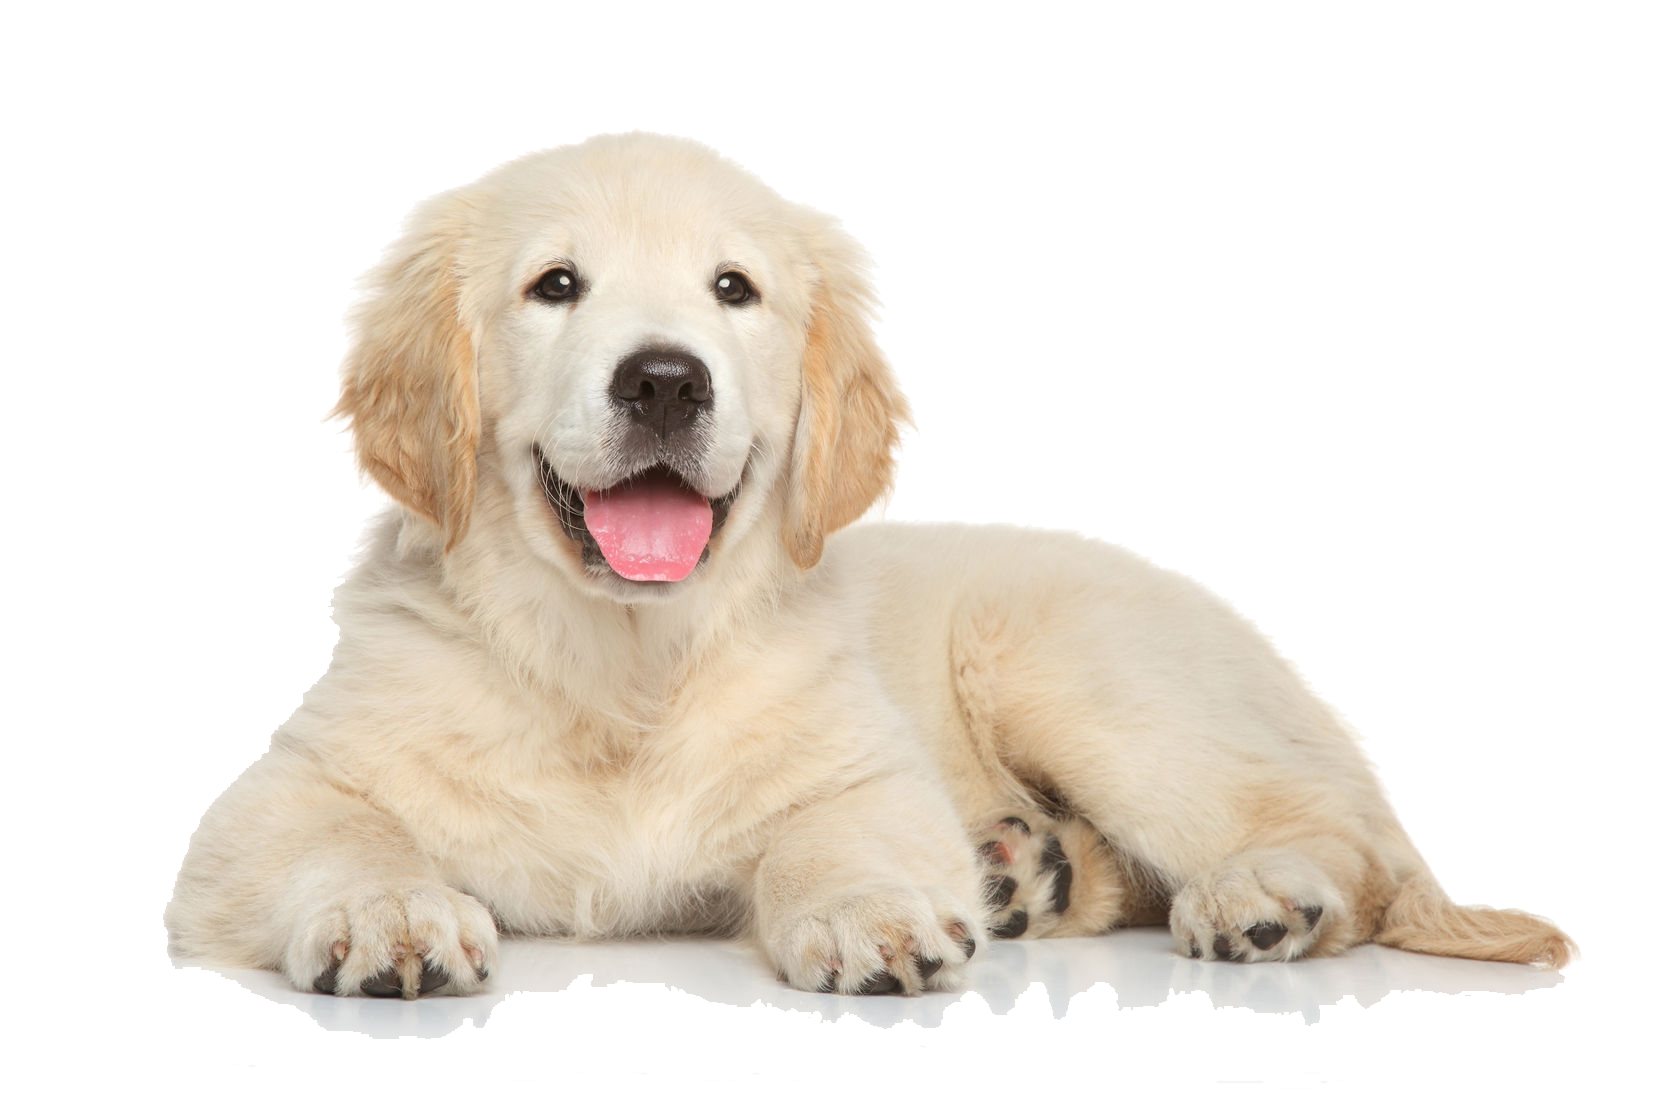 Images transparent free download. Puppy png picture